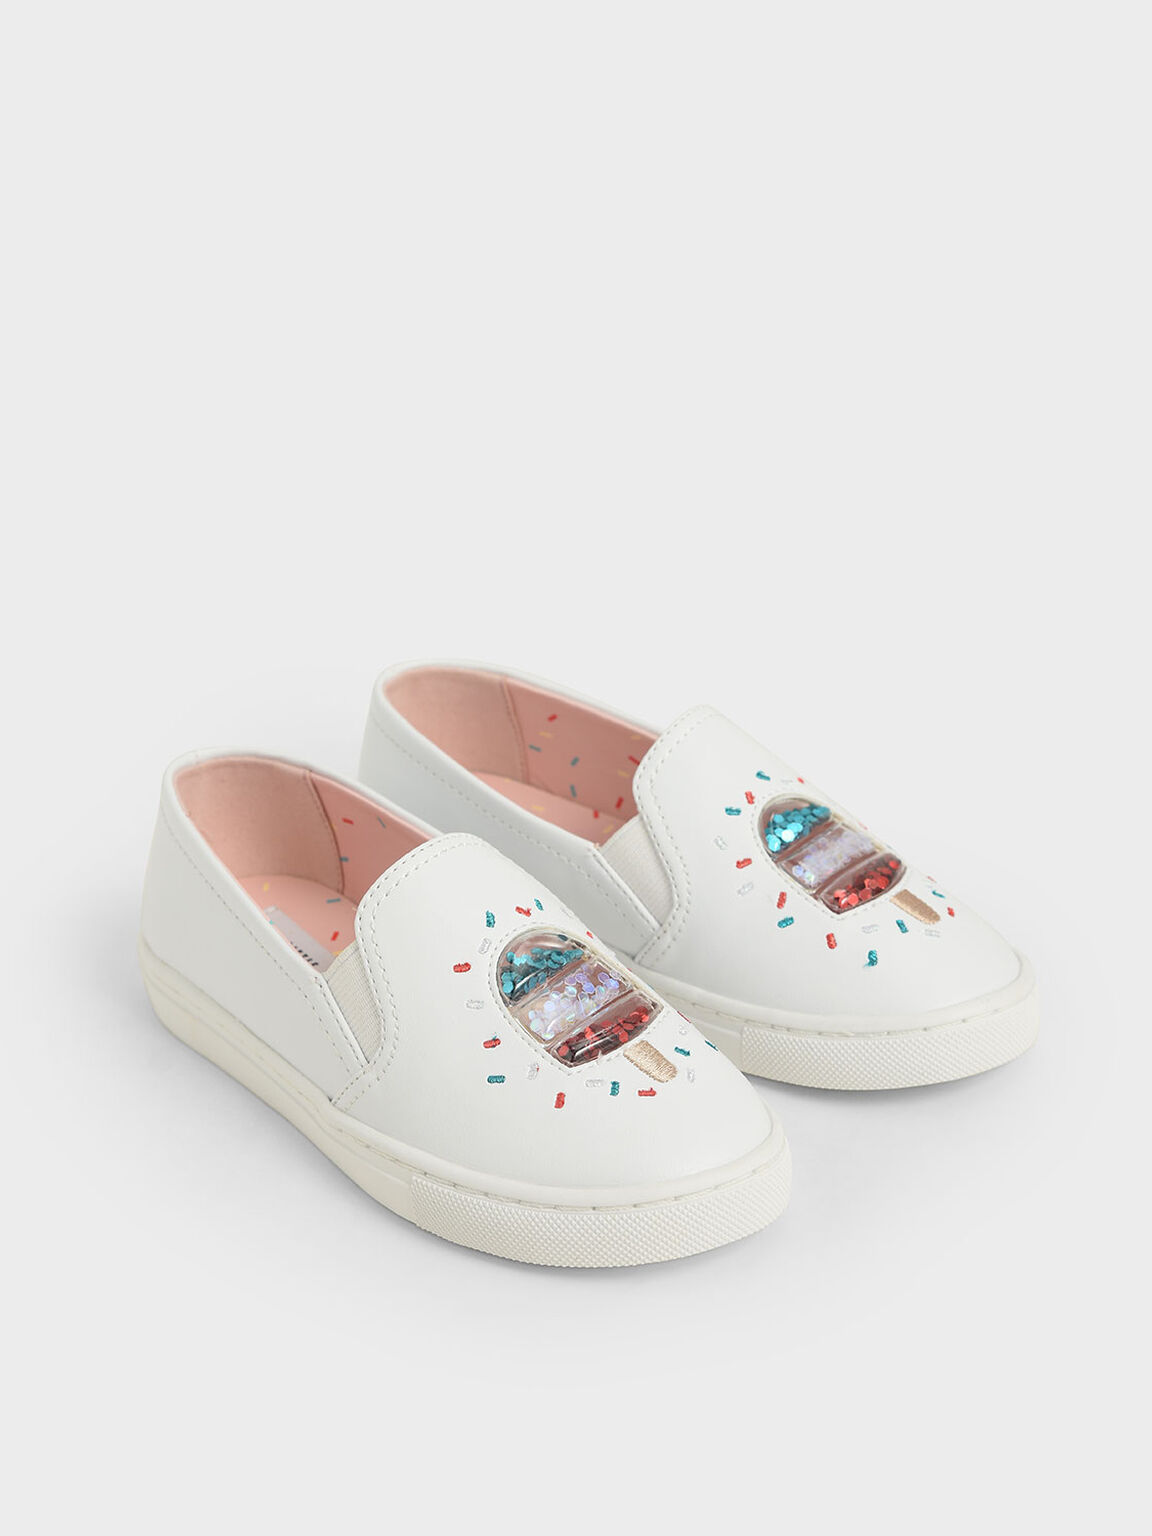 Girls' Rainbow Sprinkles Motif Sneakers, Cream, hi-res